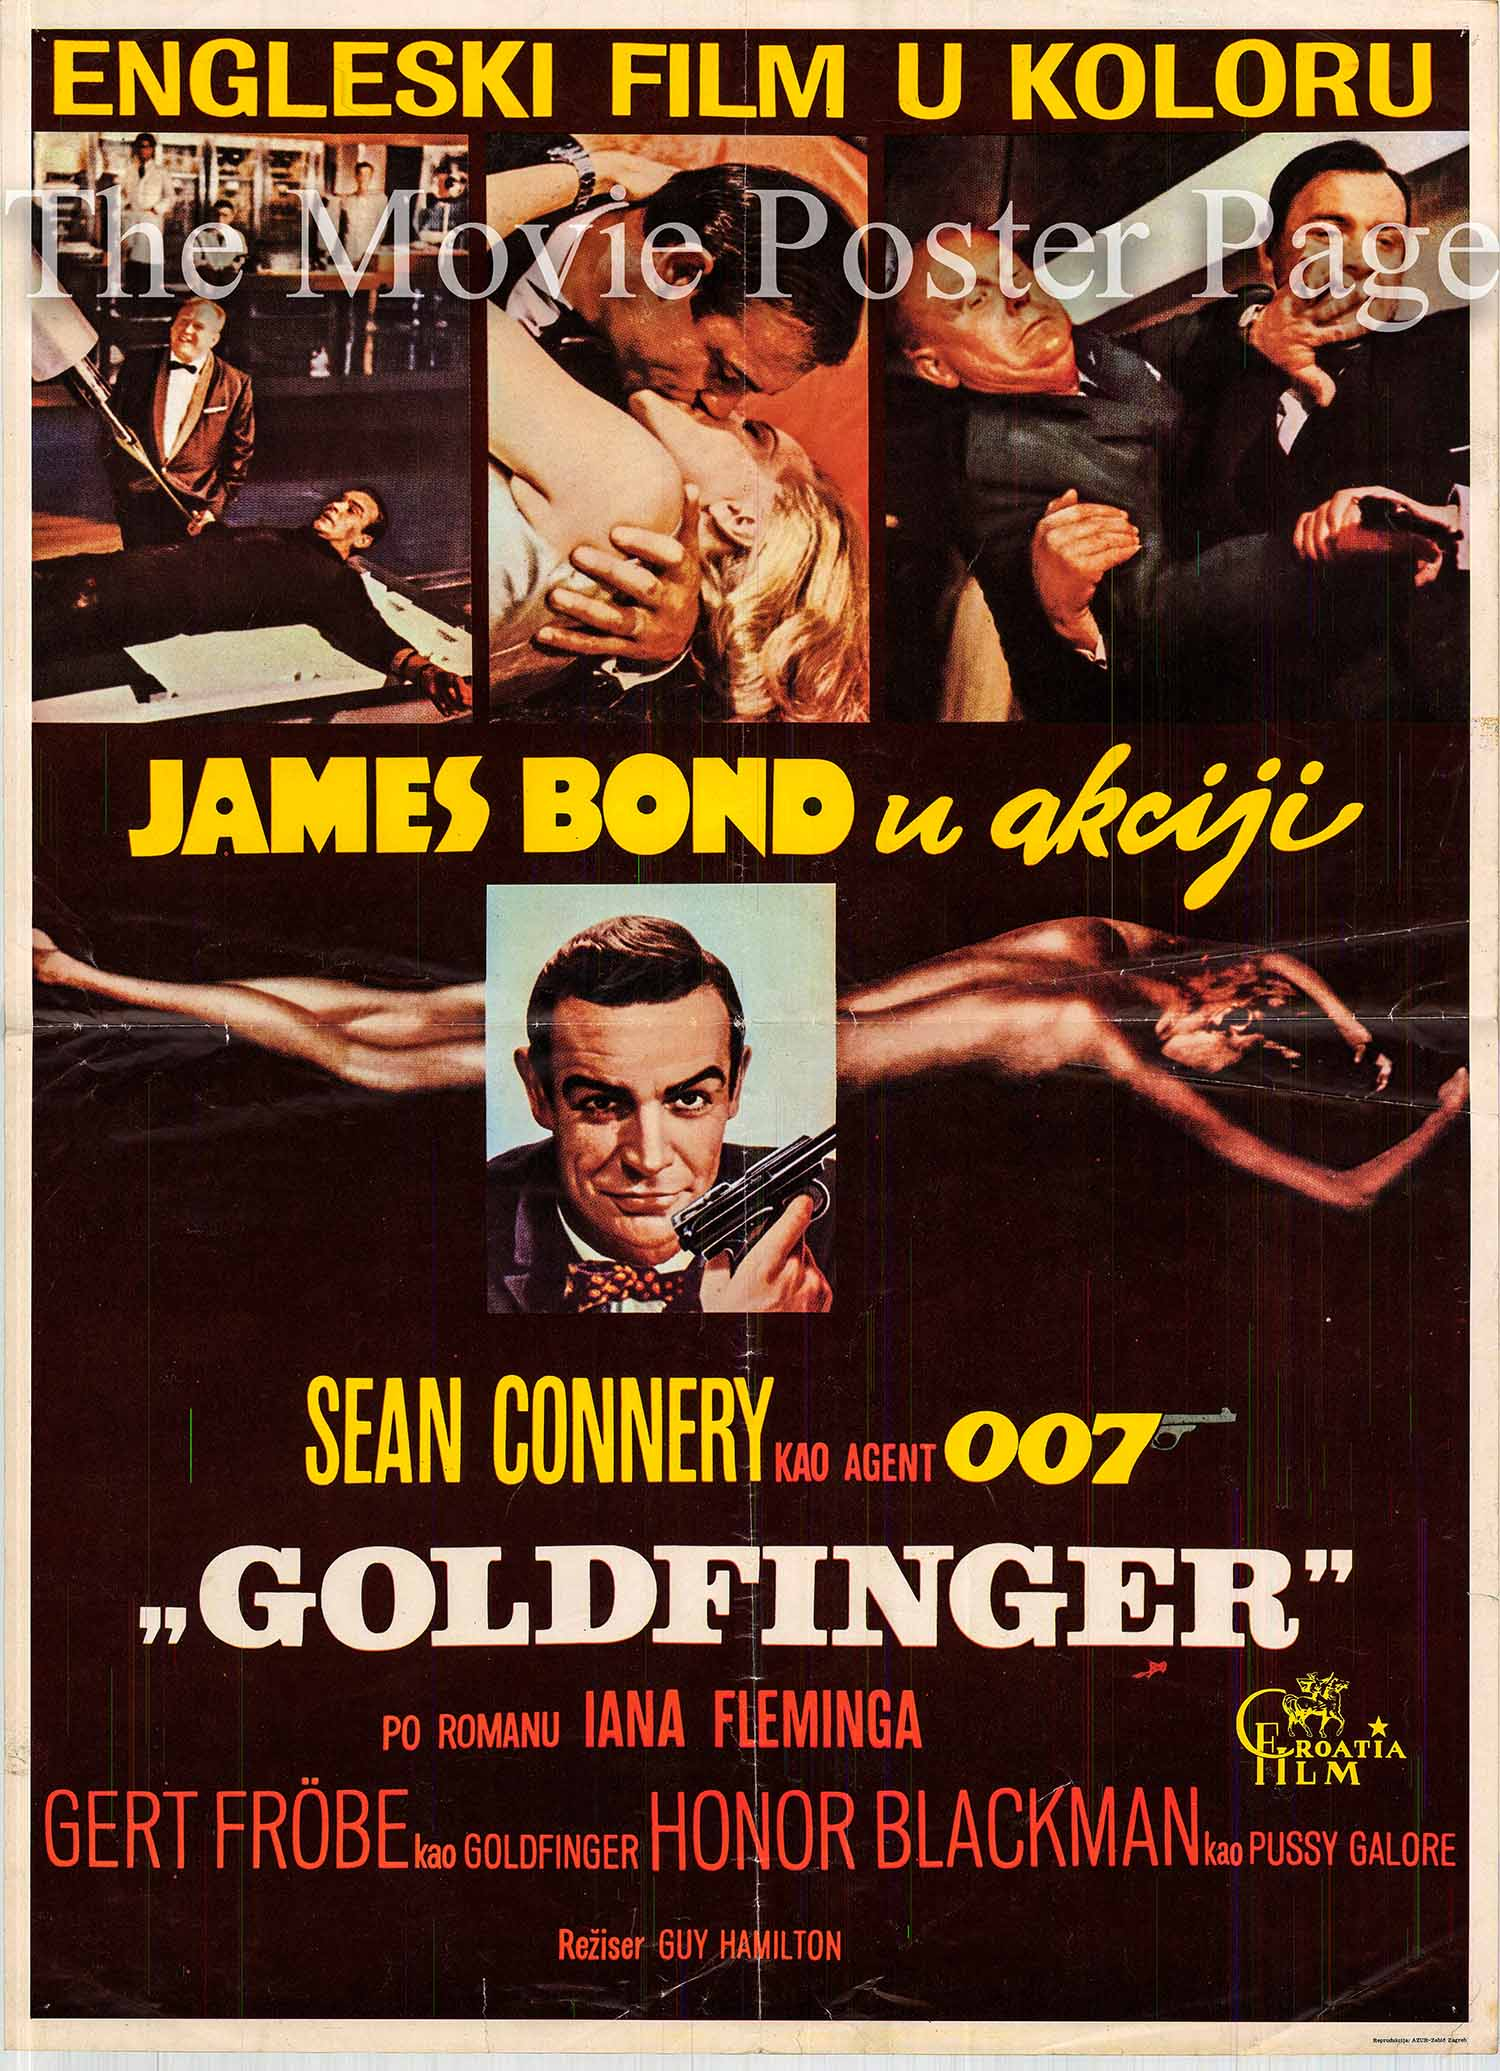 Pictured is a Yugolsavian promotional poster for the 1964 Guy Hamilton film Goldfinger starring Sean Connery as James Bond.